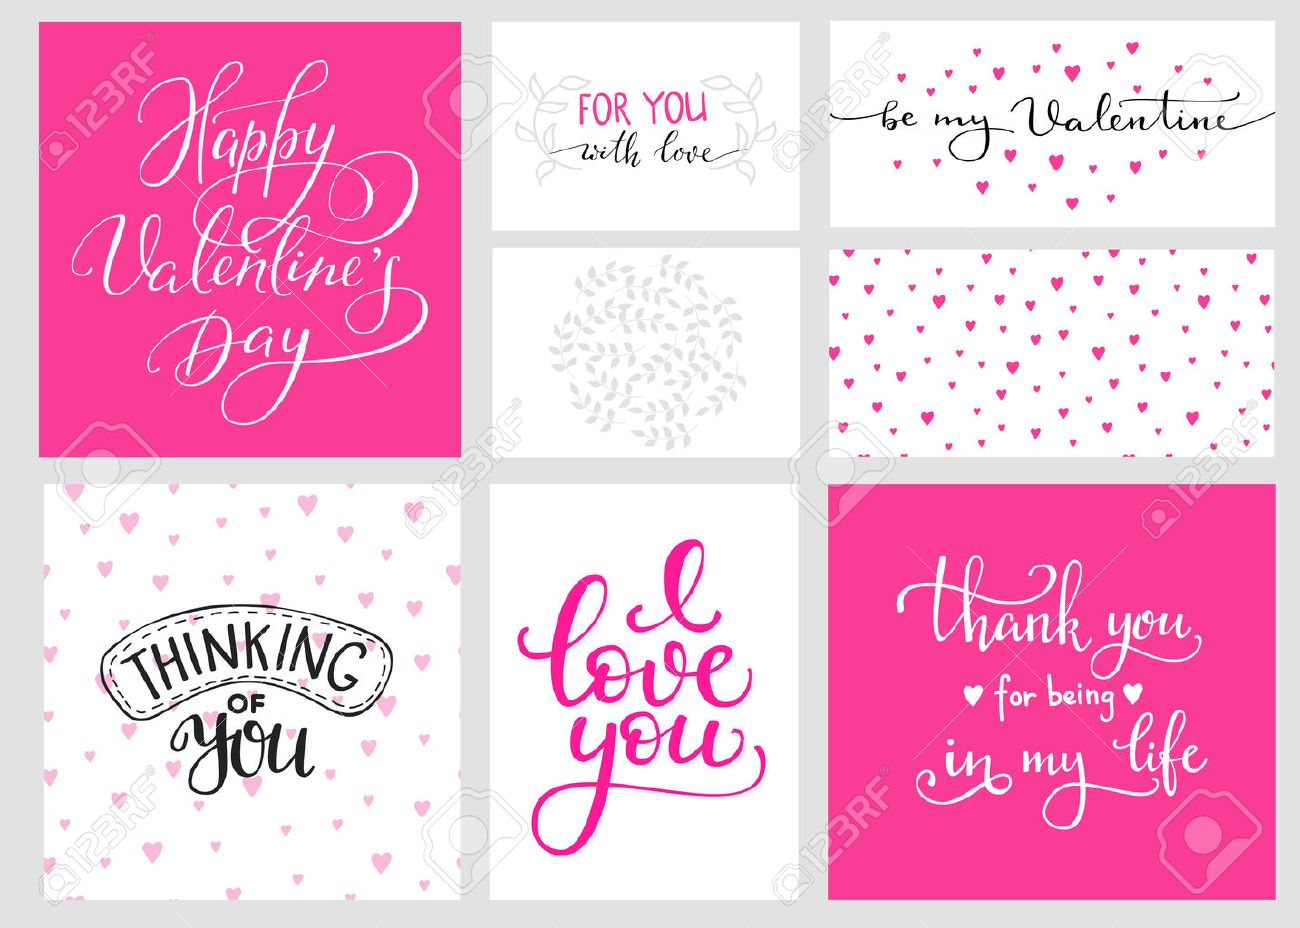 Romantic Valentines day lettering set and color backgrounds. Calligraphy postcard or poster graphic design lettering element. Hand written calligraphy style valentines day romantic postcard. Love you. - 50002977